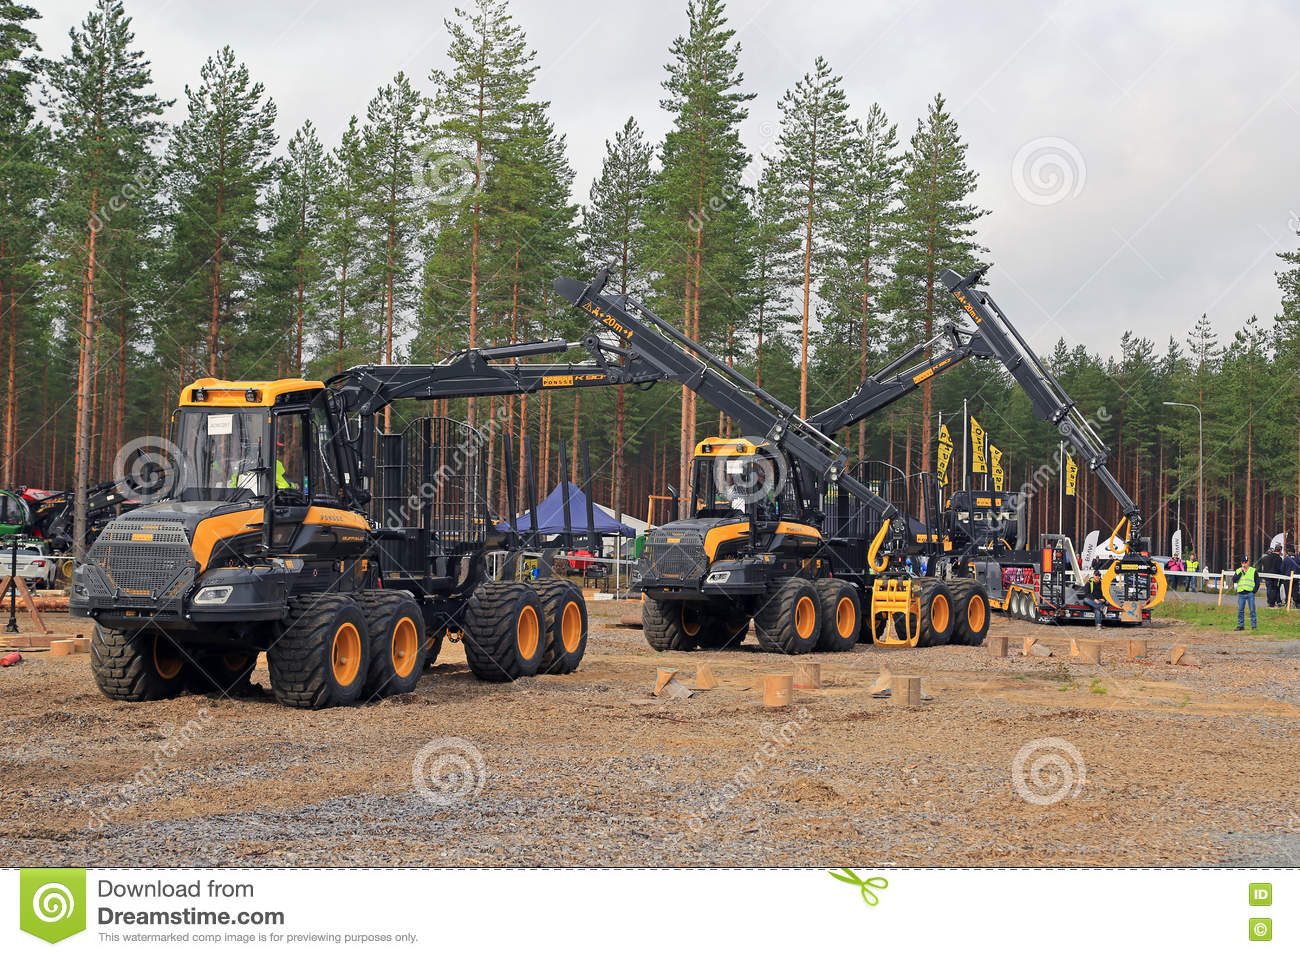 Beroeps in Forest Machine Operator Competition